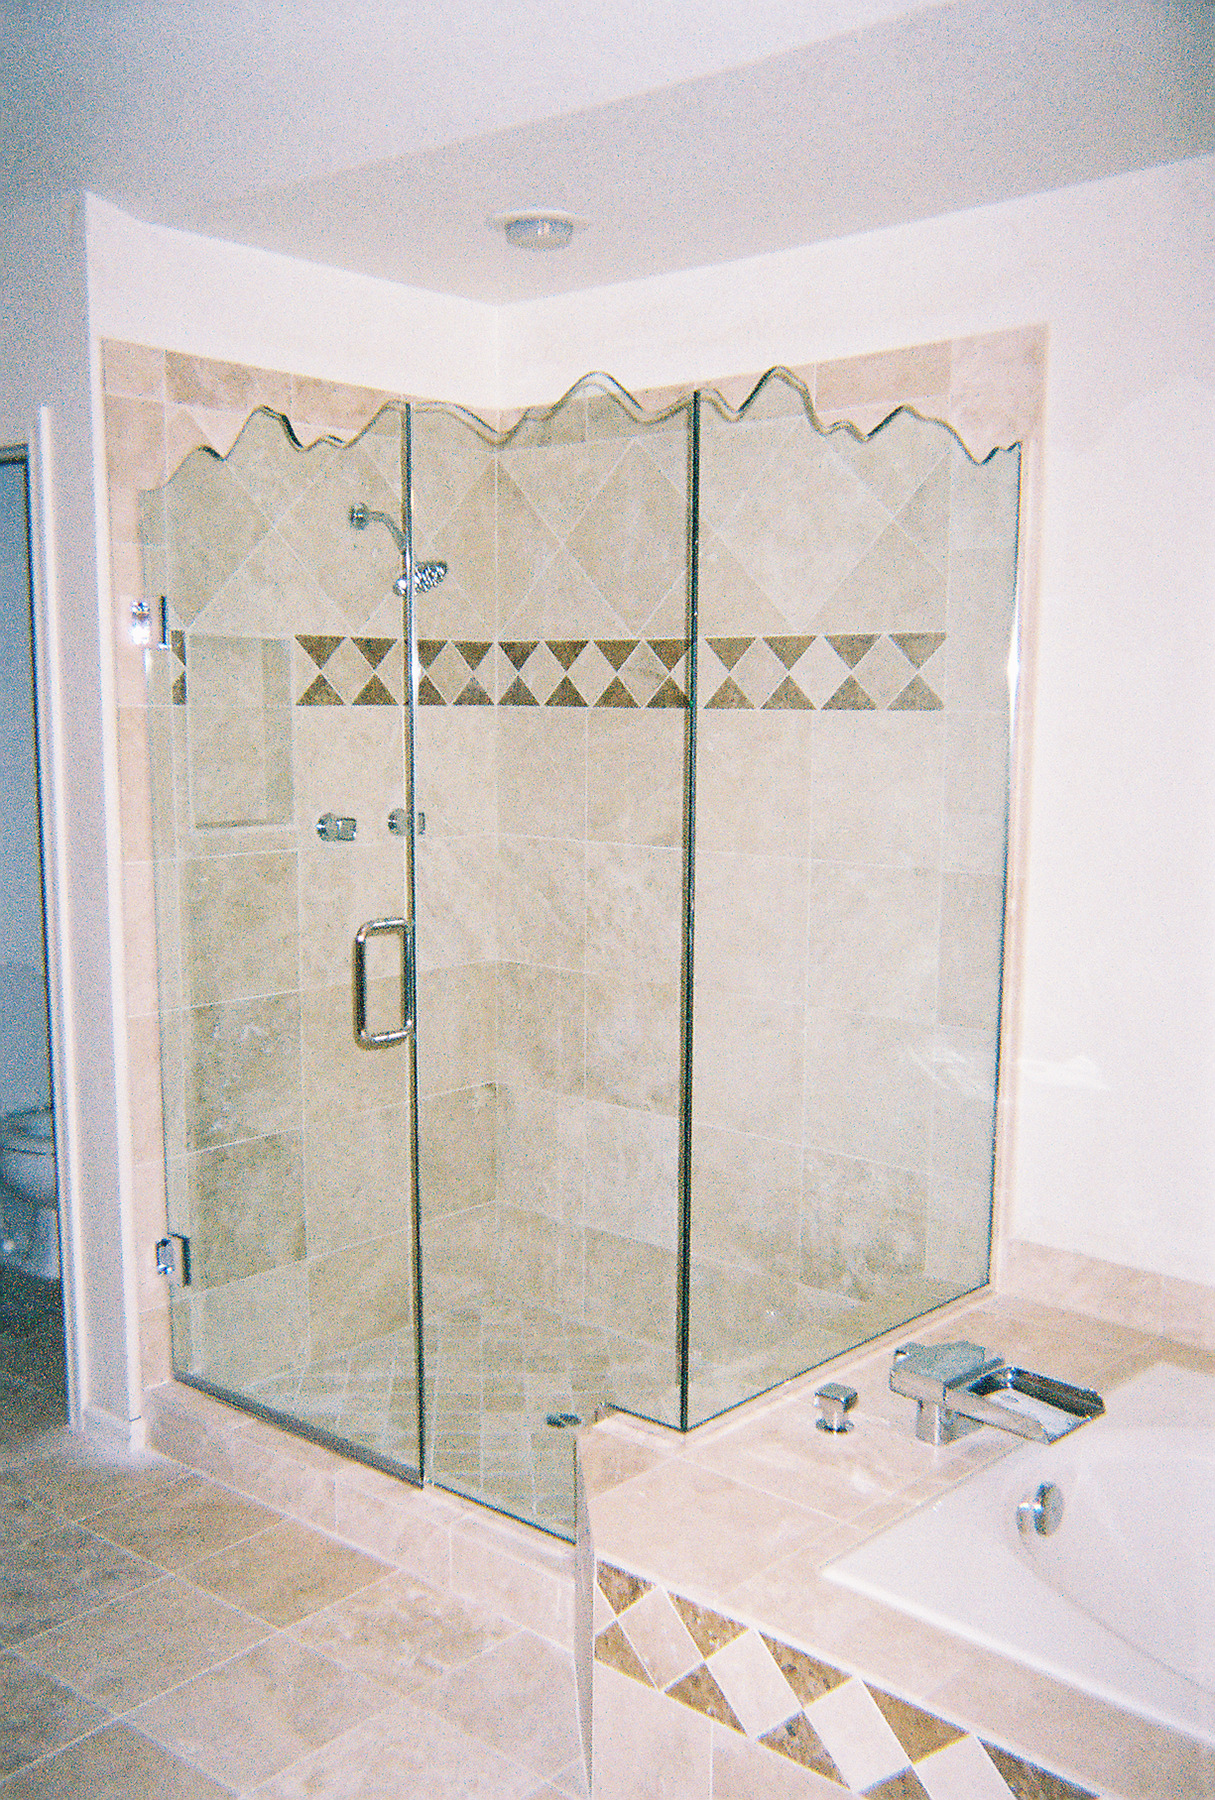 Frameless shower doors glendale az glendale az frameless shower doors planetlyrics Image collections